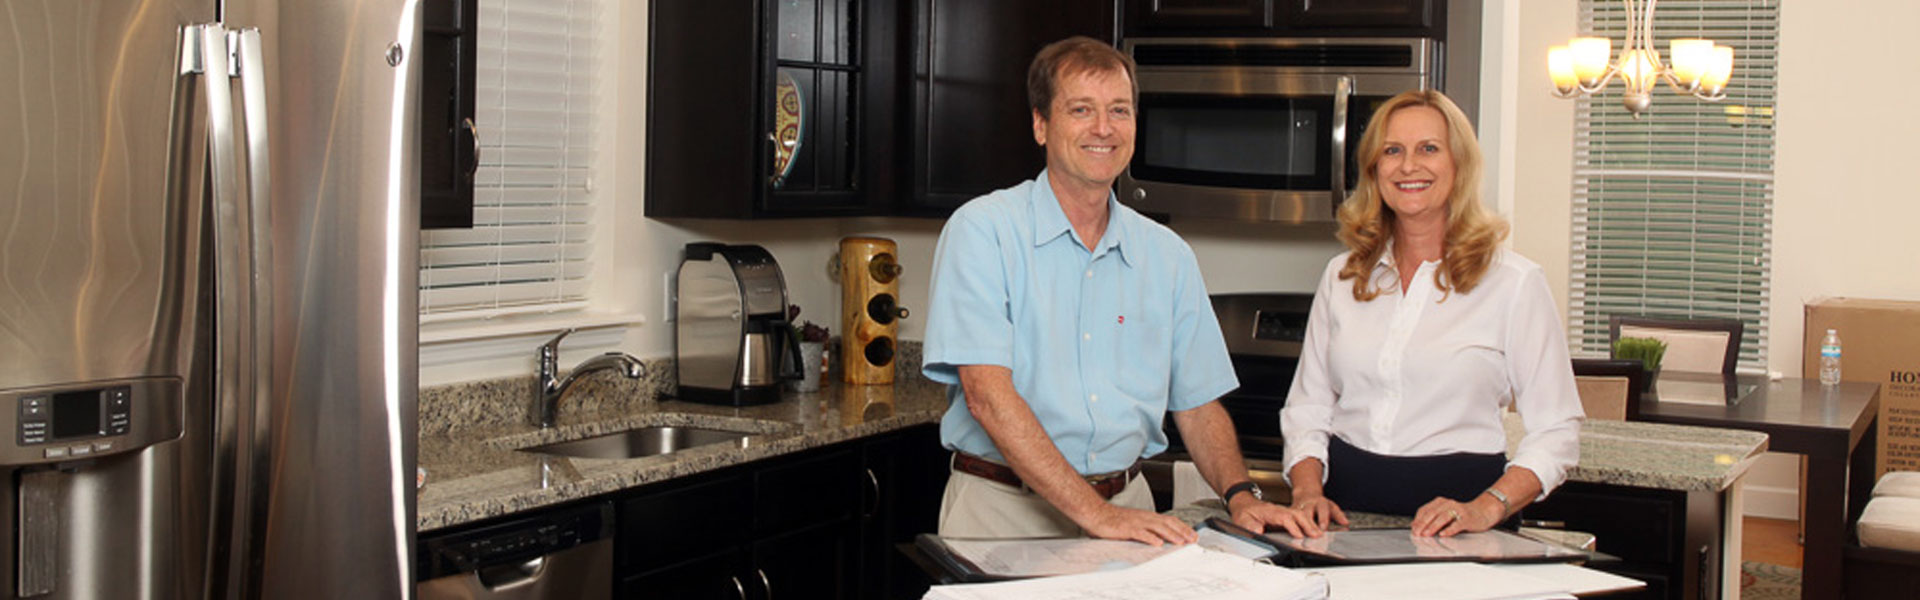 Melody and David Shacter founded TerraWise to build 